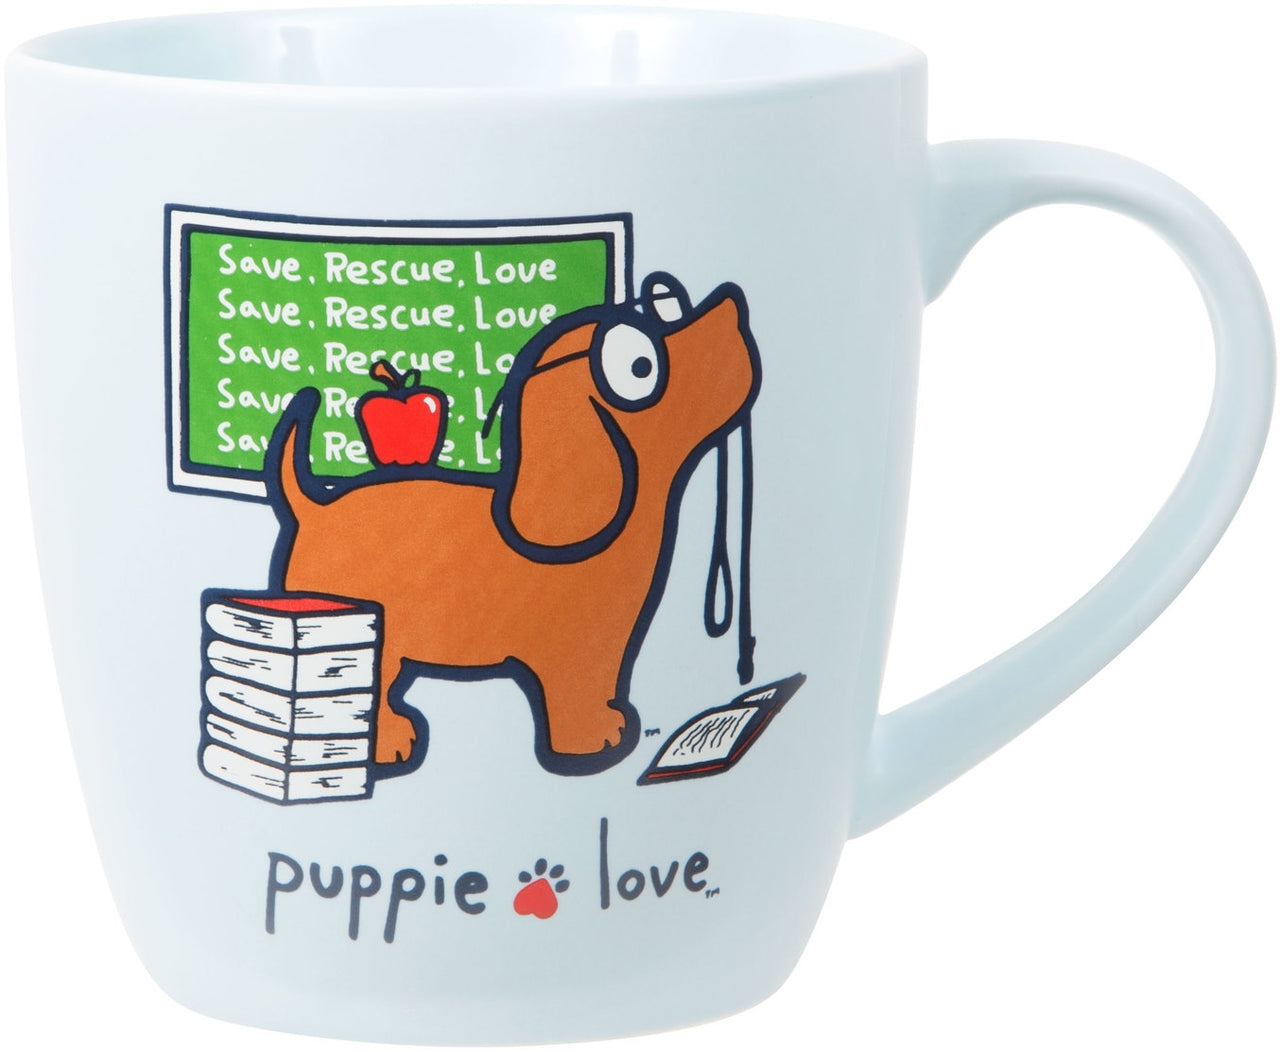 TEACHER PUP MUG - Puppie Love